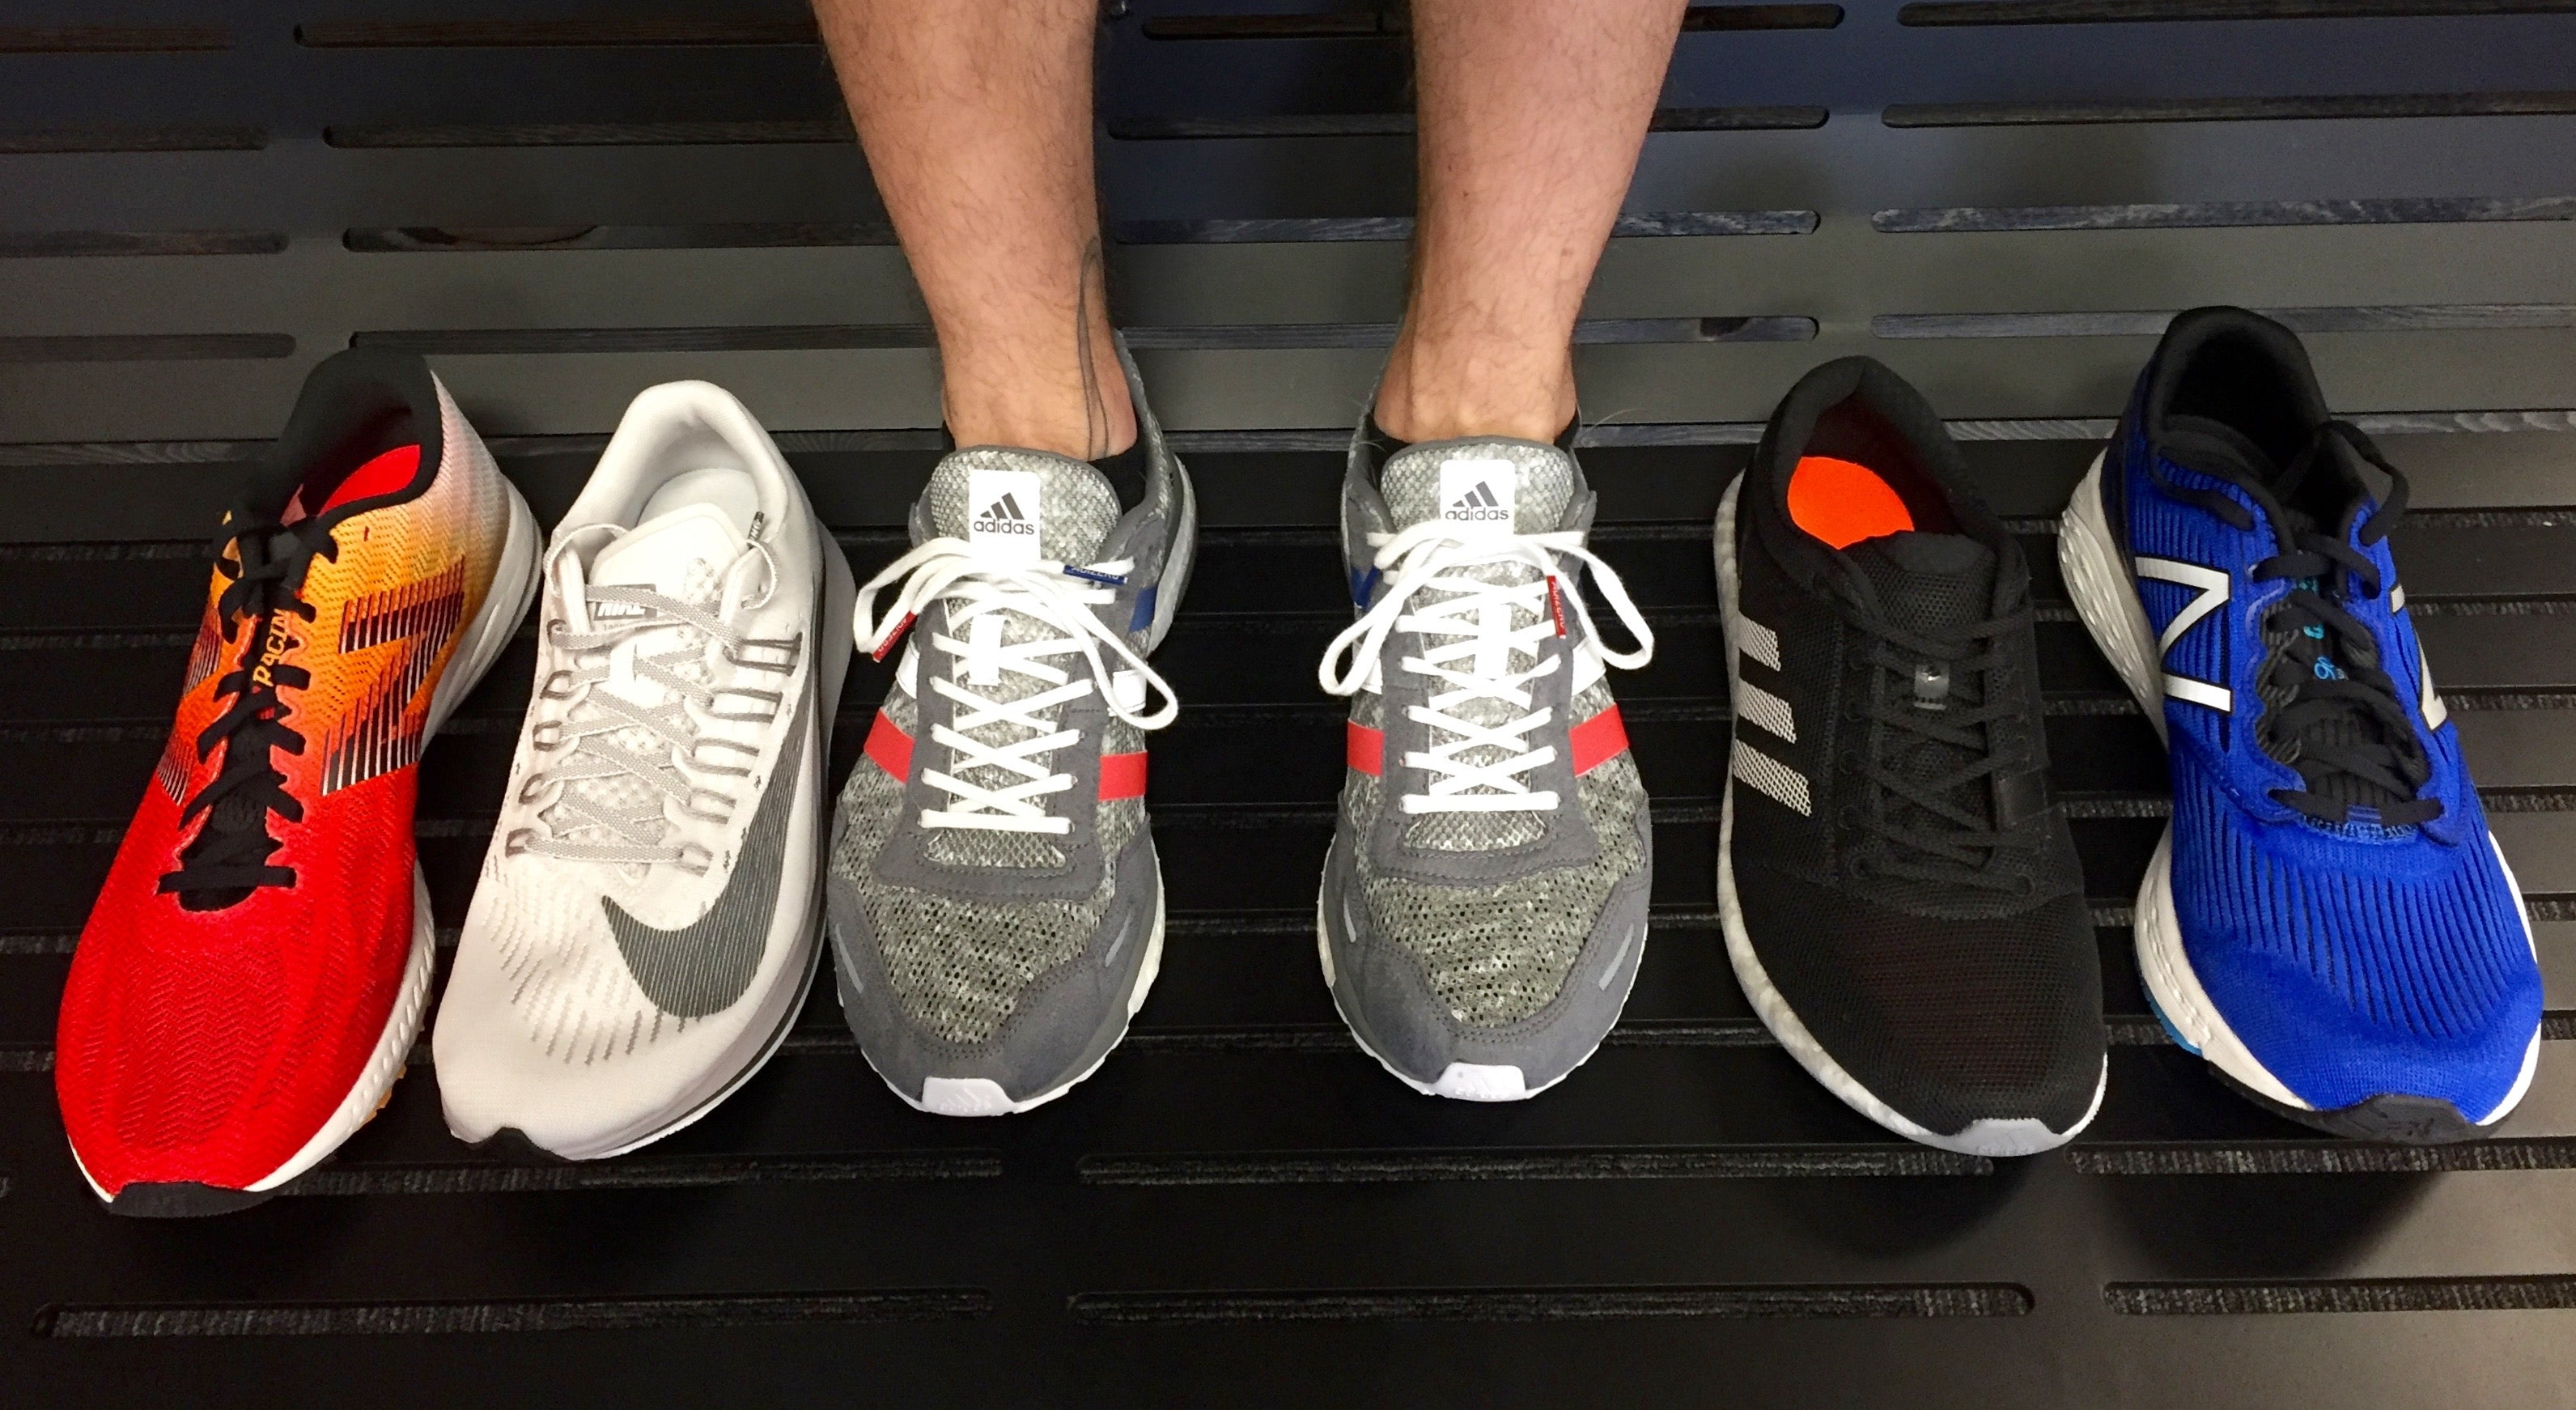 c5771e3069e6 Ready to Run Fast  These 5 Shoes Should Help With That – Columbus ...